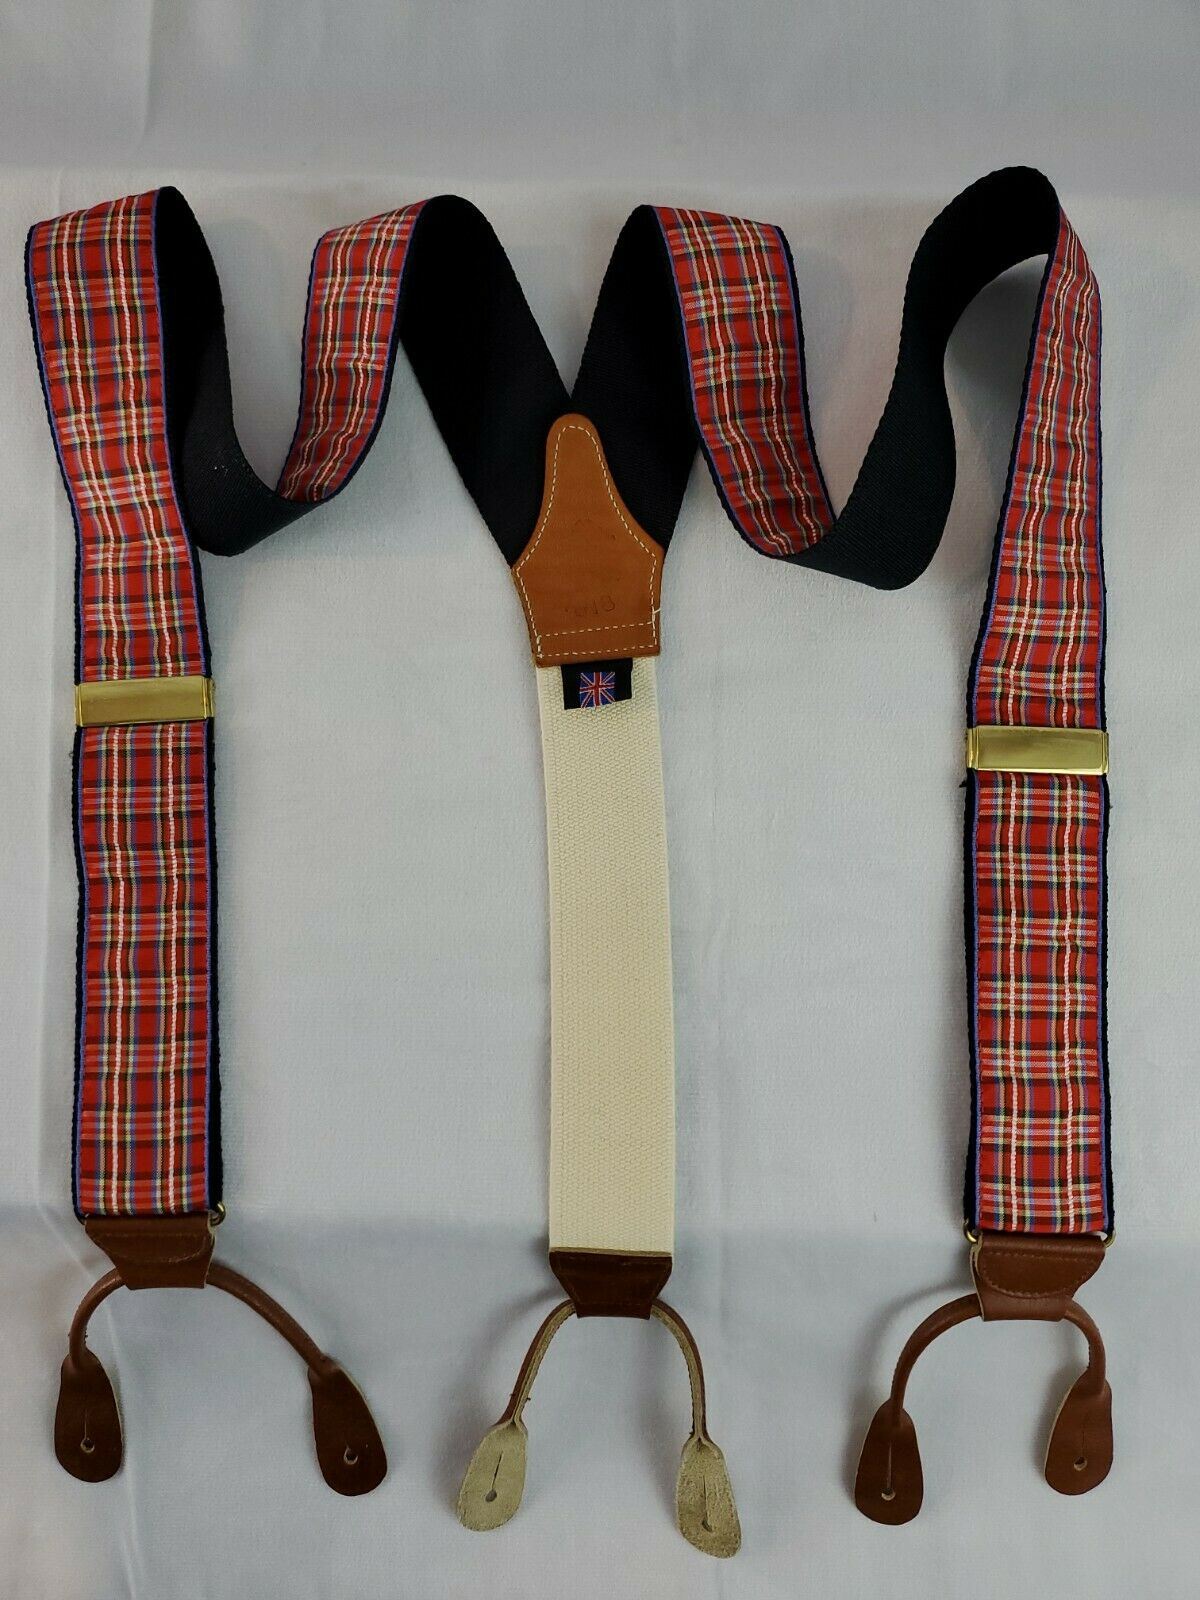 BROOKS BROTHERS Suspenders - Red Plaid - Leather Tabs - England - Free Shipping